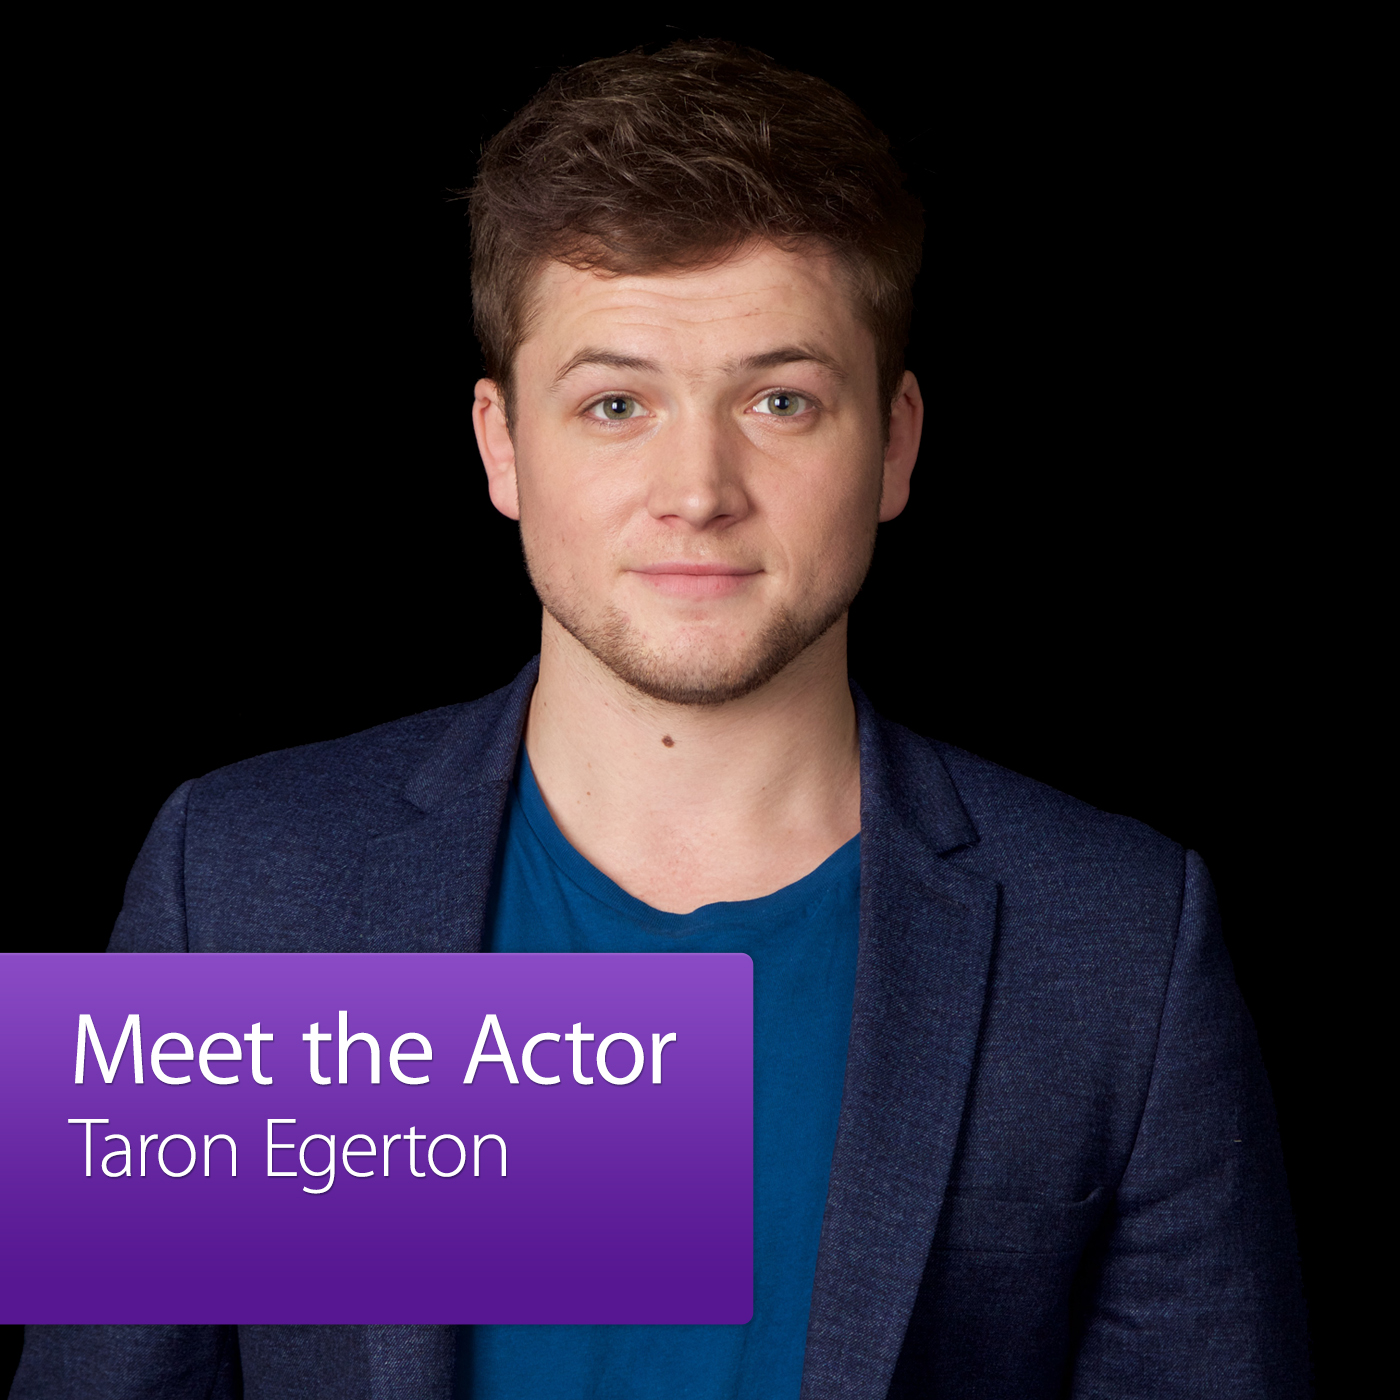 Taron Egerton: Meet the Actor